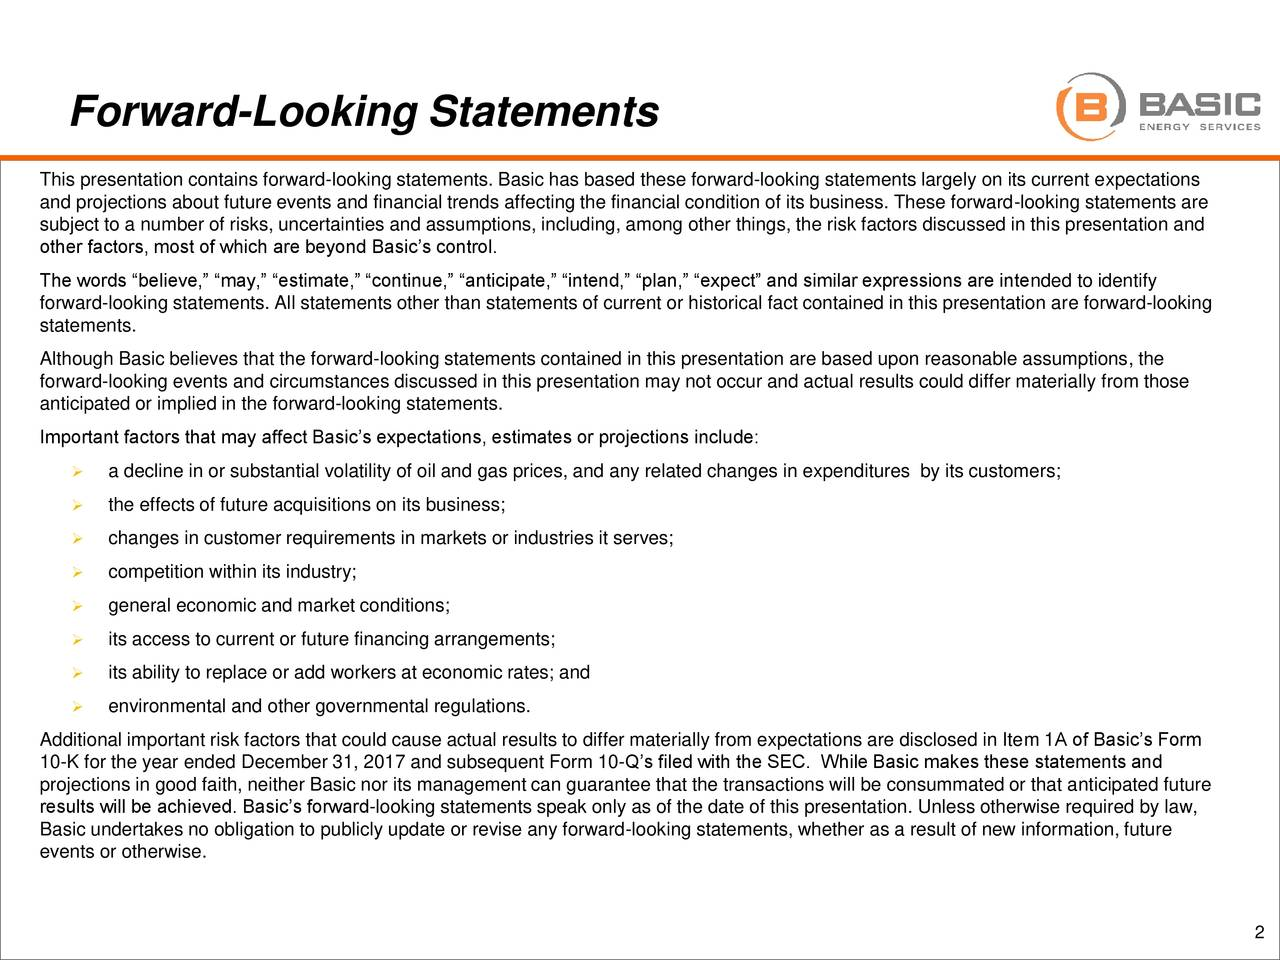 """This presentation contains forward-looking statements. Basic has based these forward-looking statements largely on its current expectations and projections about future events and financial trends affecting the financial condition of its business. These forward-looking statements are subject to a number of risks, uncertainties and assumptions, including, among other things, the risk factors discussed in this presentation and other factors, most of which are beyond Basic's control. The words """"believe,"""" """"may,"""" """"estimate,"""" """"continue,"""" """"anticipate,"""" """"intend,"""" """"plan,"""" """"expect"""" and similar expressions are intended to identify forward-looking statements. All statements other than statements of current or historical fact contained in this presentation are forward-looking statements. Although Basic believes that the forward-looking statements contained in this presentation are based upon reasonable assumptions, the forward-looking events and circumstances discussed in this presentation may not occur and actual results could differ materially from those anticipated or implied in the forward-looking statements. Important factors that may affect Basic's expectations, estimates or projections include:  a decline in or substantial volatility of oil and gas prices, and any related changes in expenditures by its customers;  the effects of future acquisitions on its business;  changes in customer requirements in markets or industries it serves;  competition within its industry;  general economic and market conditions;  its access to current or future financing arrangements;  its ability to replace or add workers at economic rates; and  environmental and other governmental regulations. Additional important risk factors that could cause actual results to differ materially from expectations are disclosed in Item 1A of Basic's Form 10-K for the year ended December 31, 2017 and subsequent Form 10-Q's filed with the SEC. While Basic makes these statements and projections in good faith, ne"""